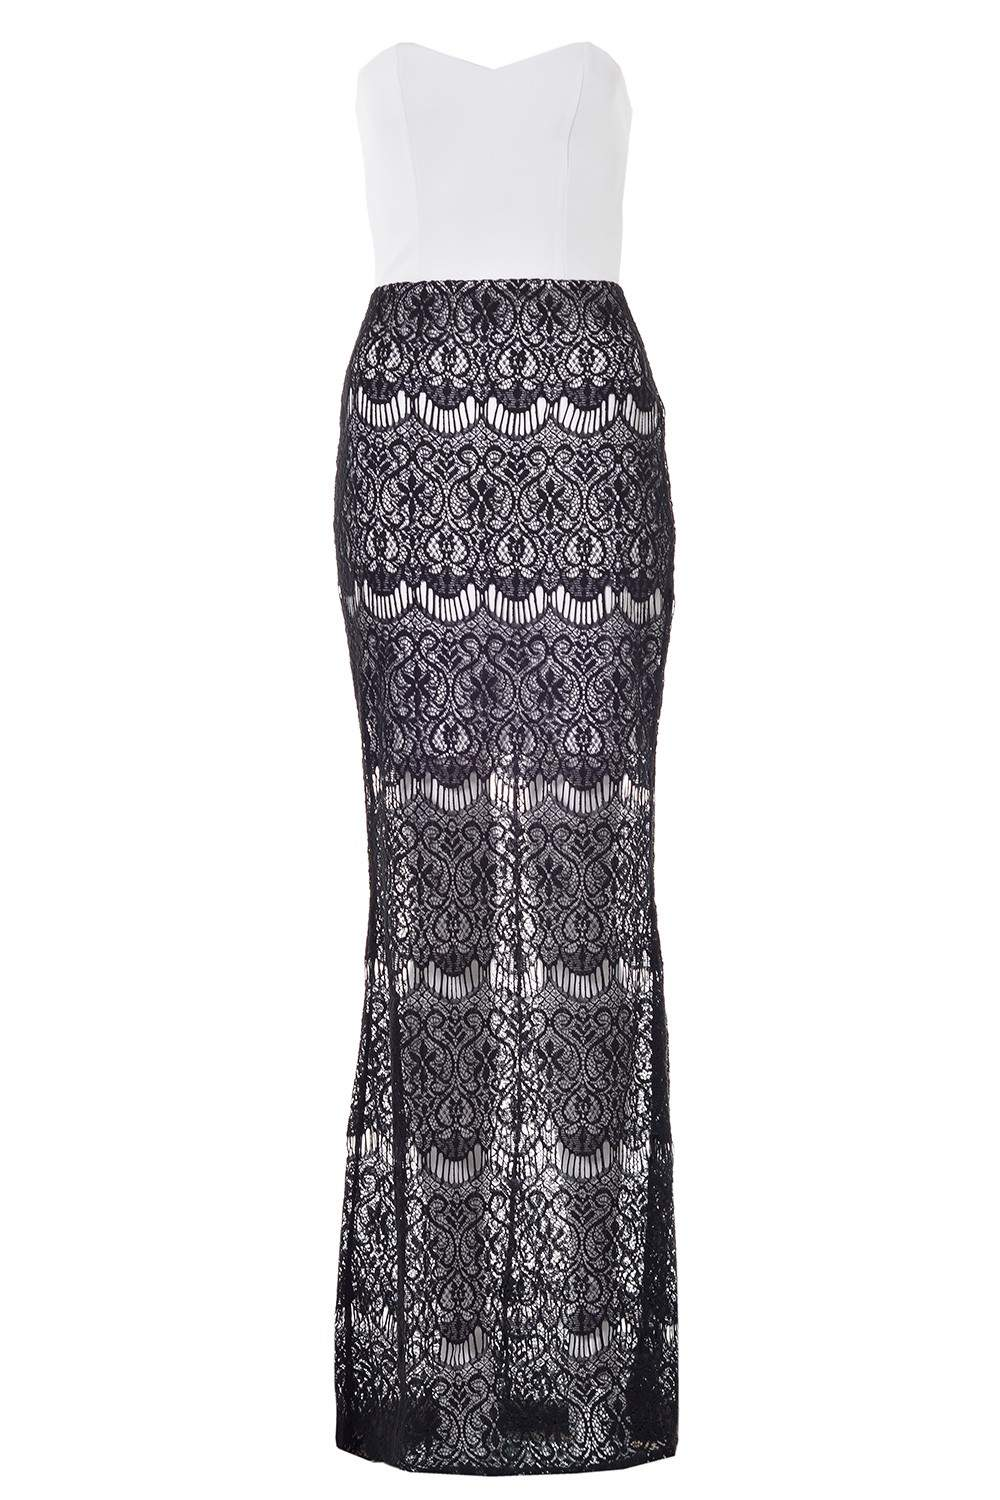 marley bandeau maxi dress with sheer lace skirt iclothing